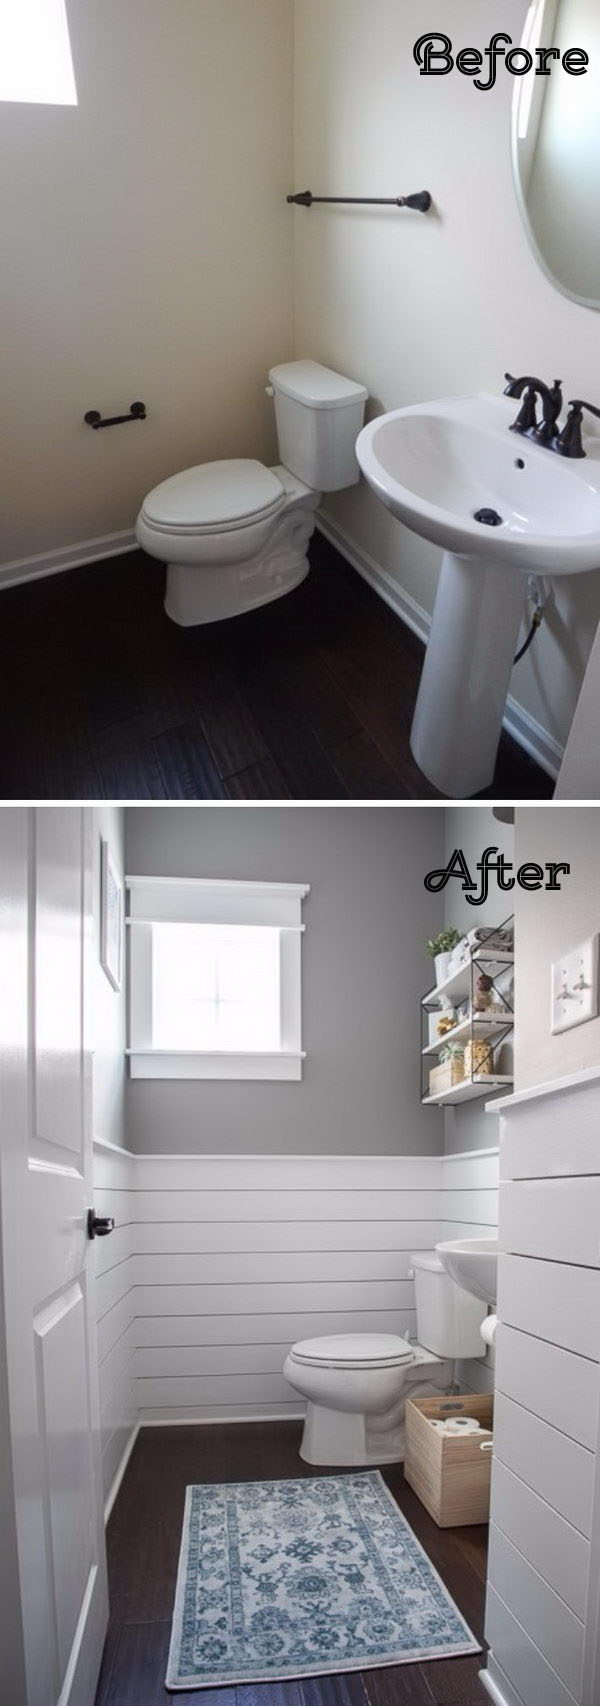 Update a Plain Bathroom By Making a Crisp Contrast Between The White Shiplap and The Light Gray Walls .